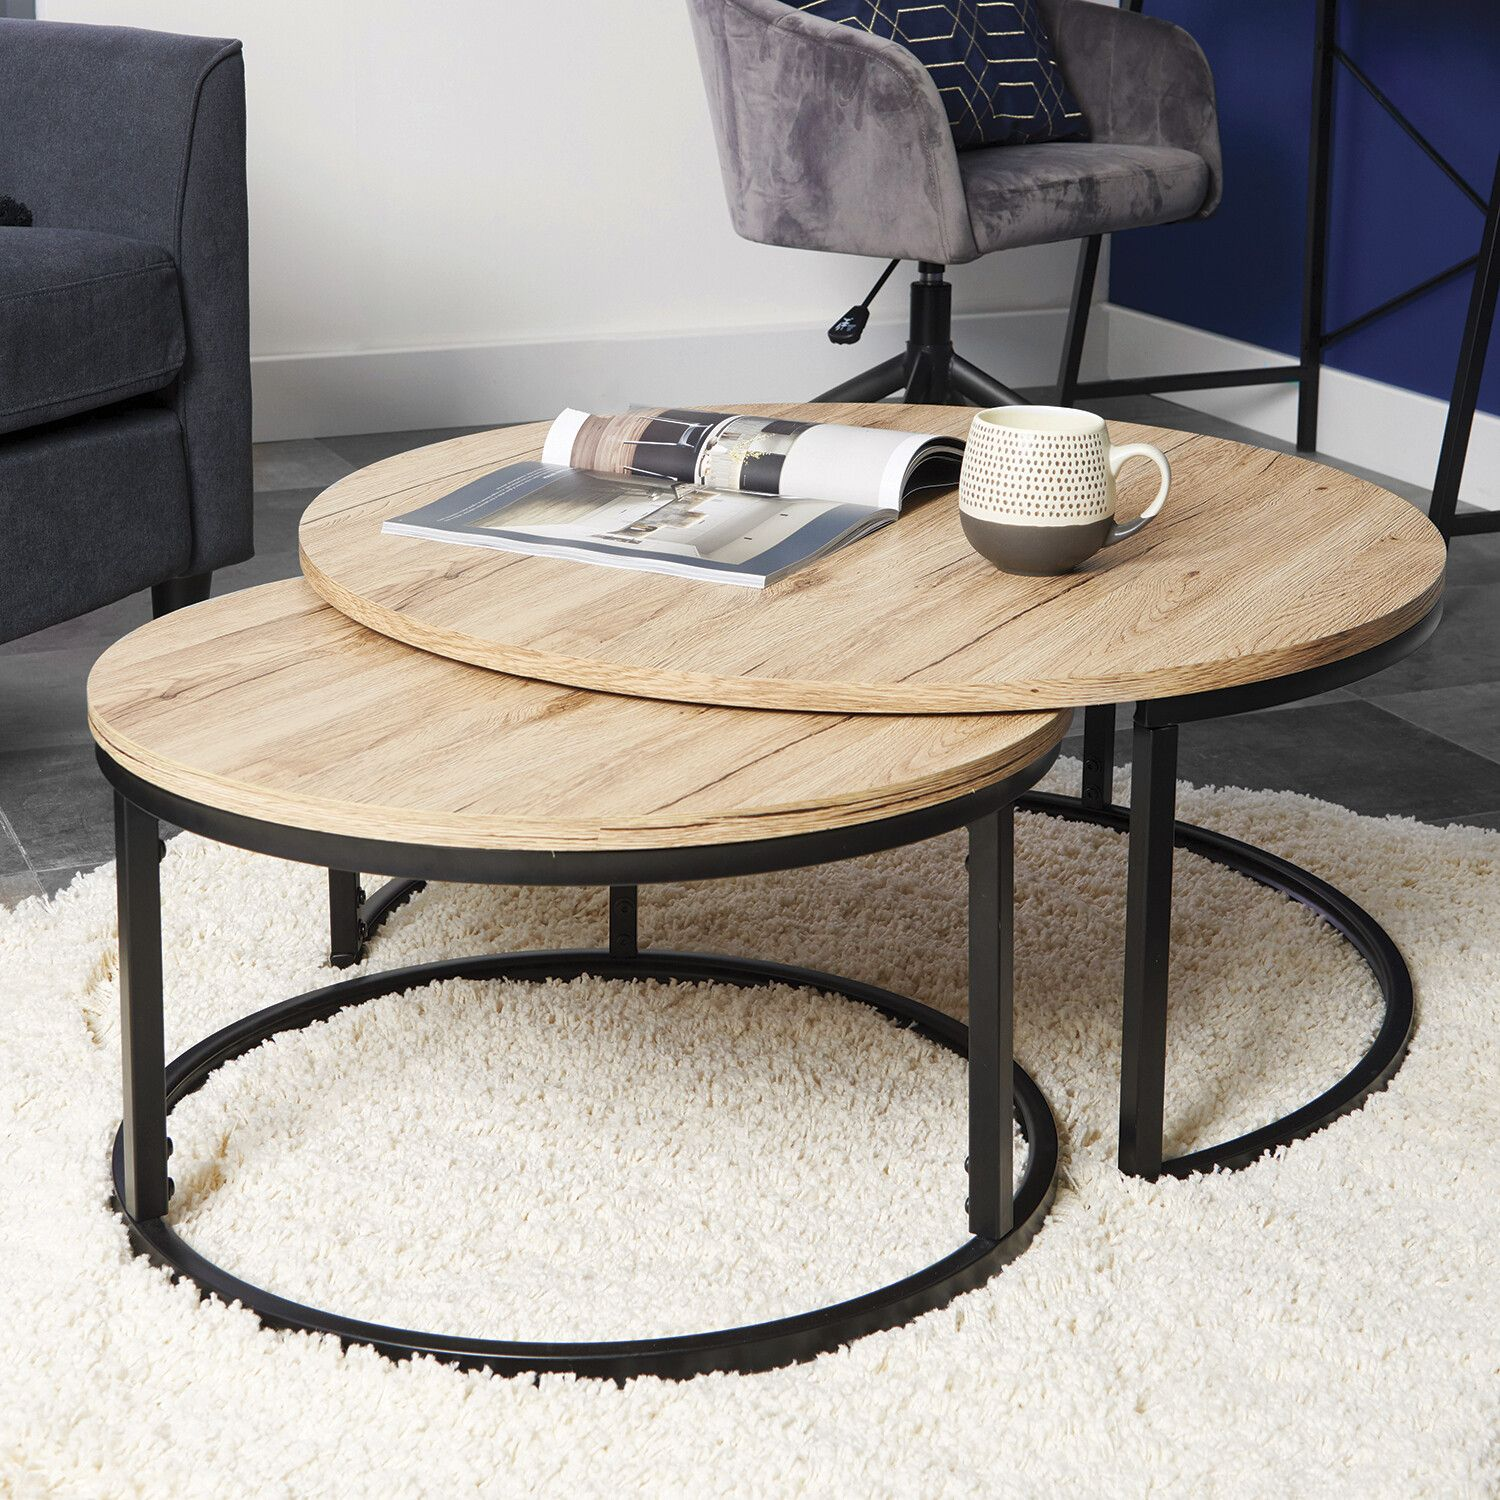 Set Of 2 Marseille Round Coffee Tables Coffee Table Living Room Modern Living Room Coffee Table Champagne Living Room [ 1500 x 1500 Pixel ]